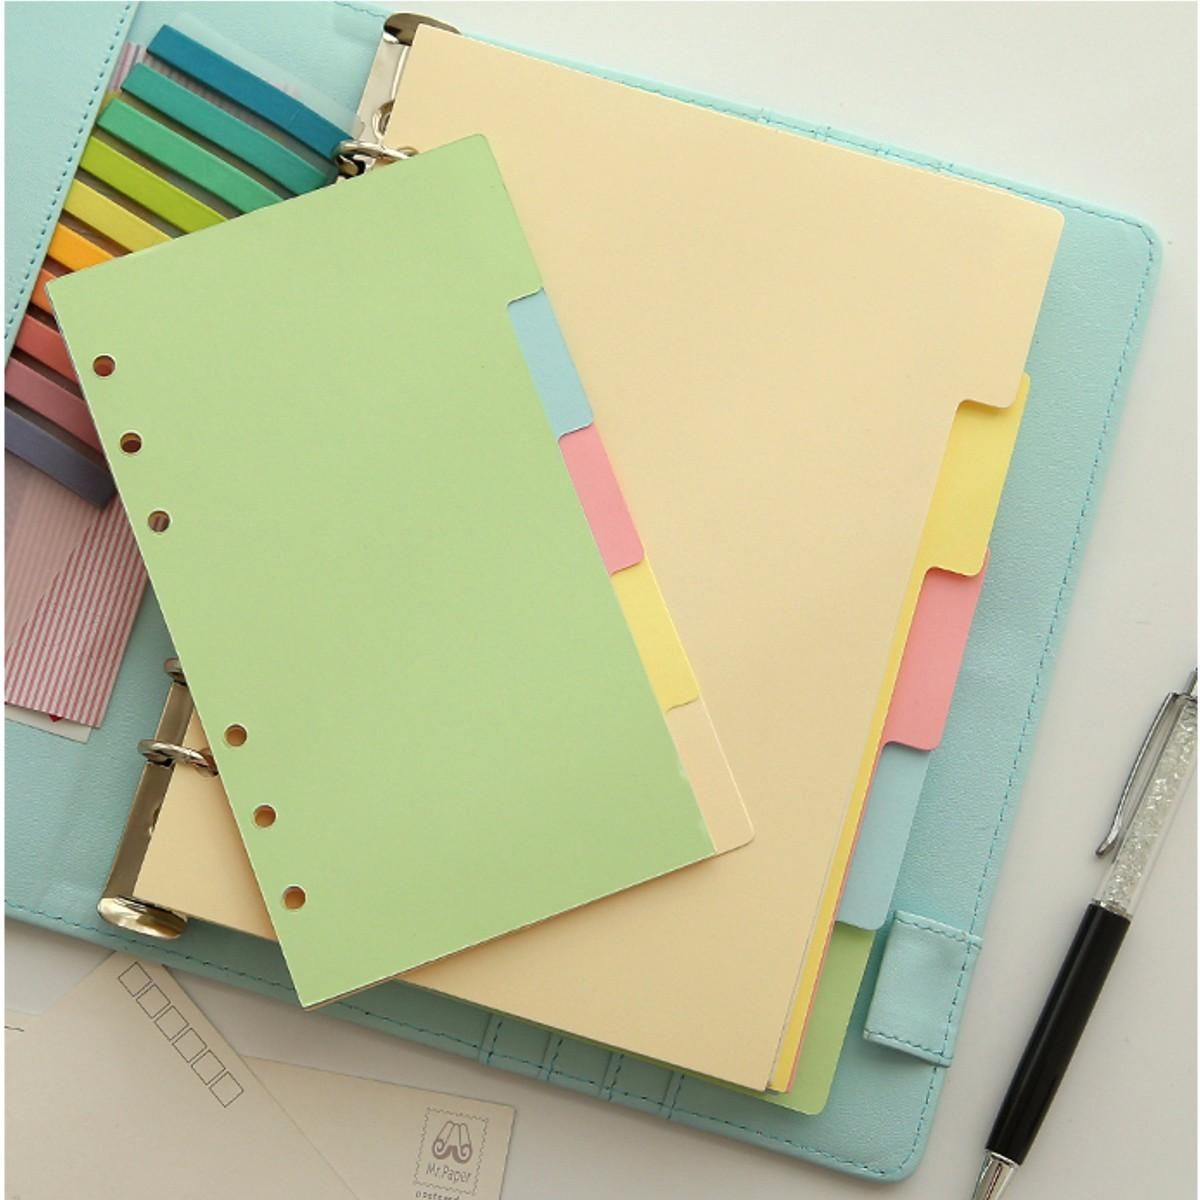 Pcs aa size index multicolored tabs divider insert refill